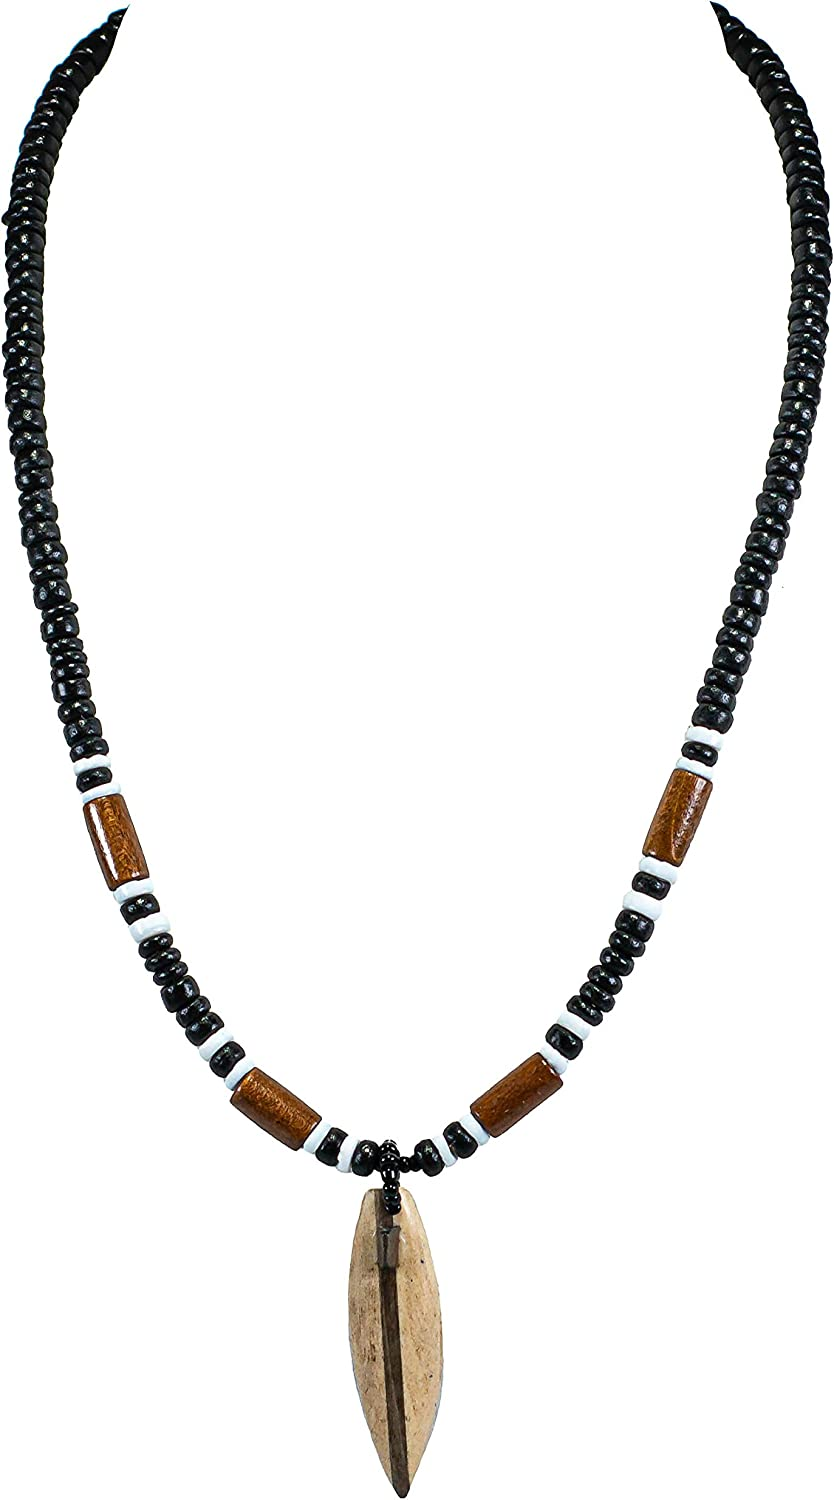 BoHo surf californian,Small necklace: beaded Indian Southwest hishi brown /& white shell beads and brass beads necklace.